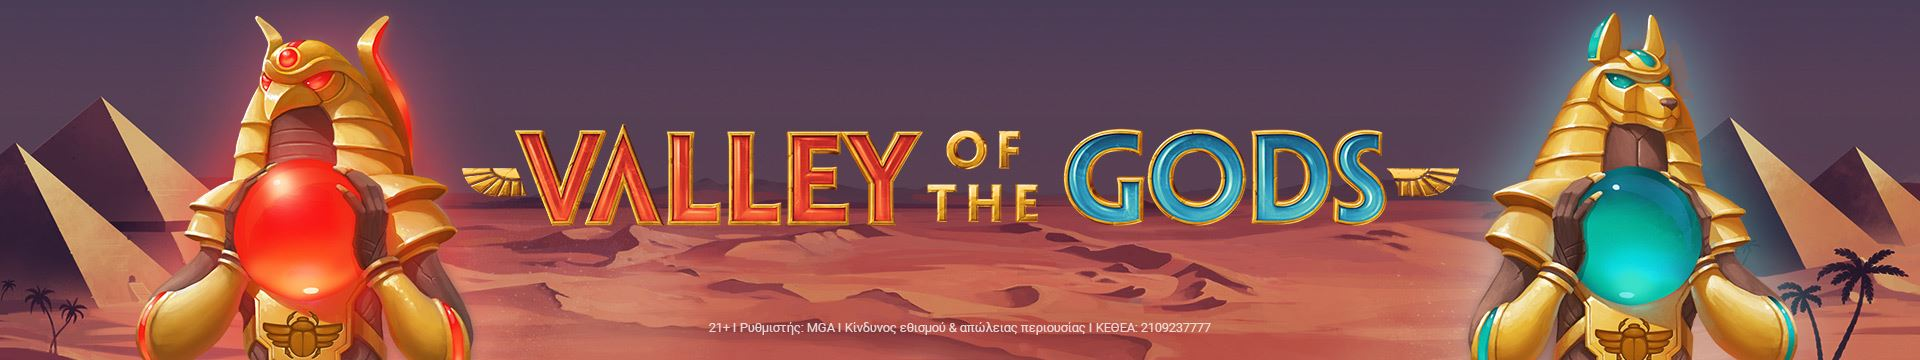 Valley_of_the_Gods